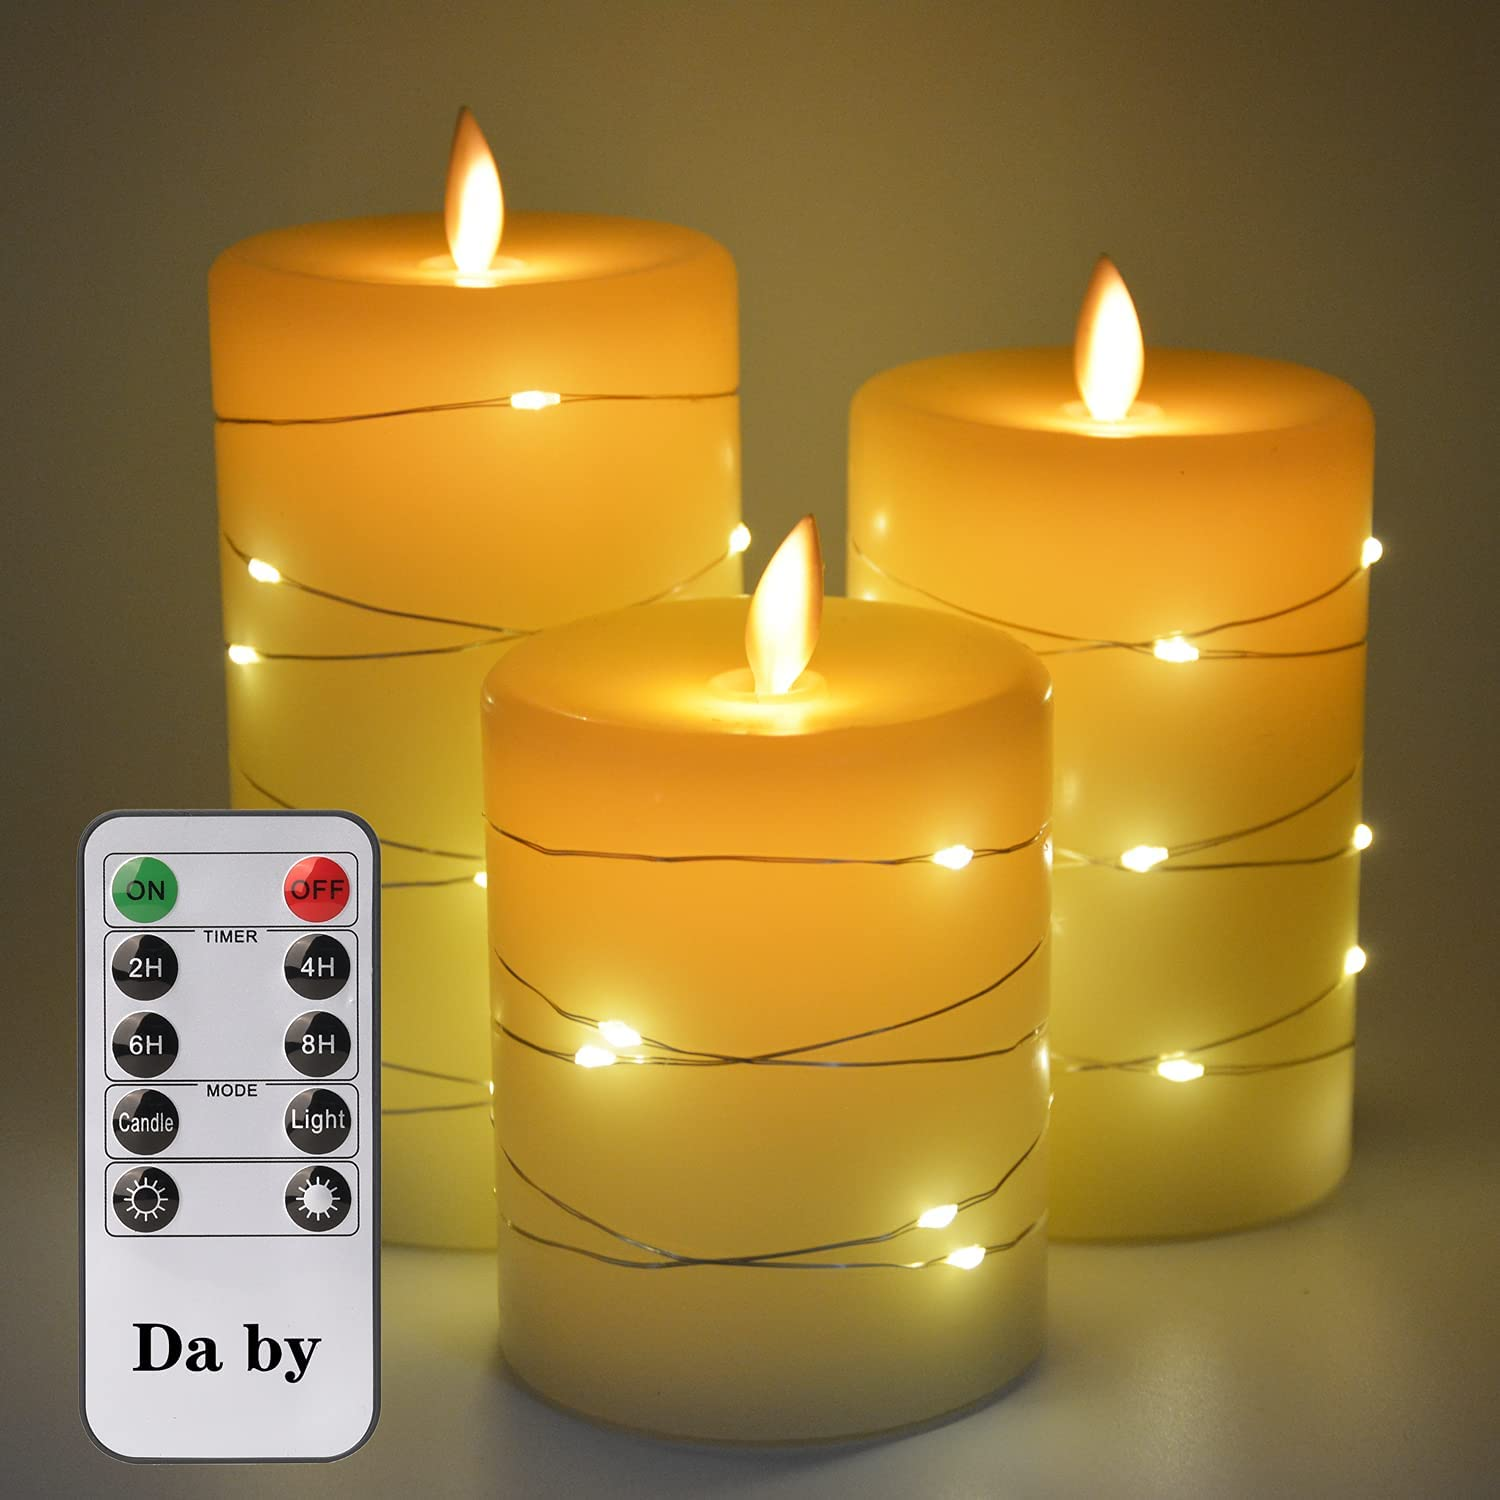 Flameless Candles, with Embedded String Lights, Da by 3-Piece LED Candles, with 10-Key Remote Control, 24-Hour Timer Function, Dancing Flame, Real Wax, Battery-Powered(Batteries not Included).: Home Improvement